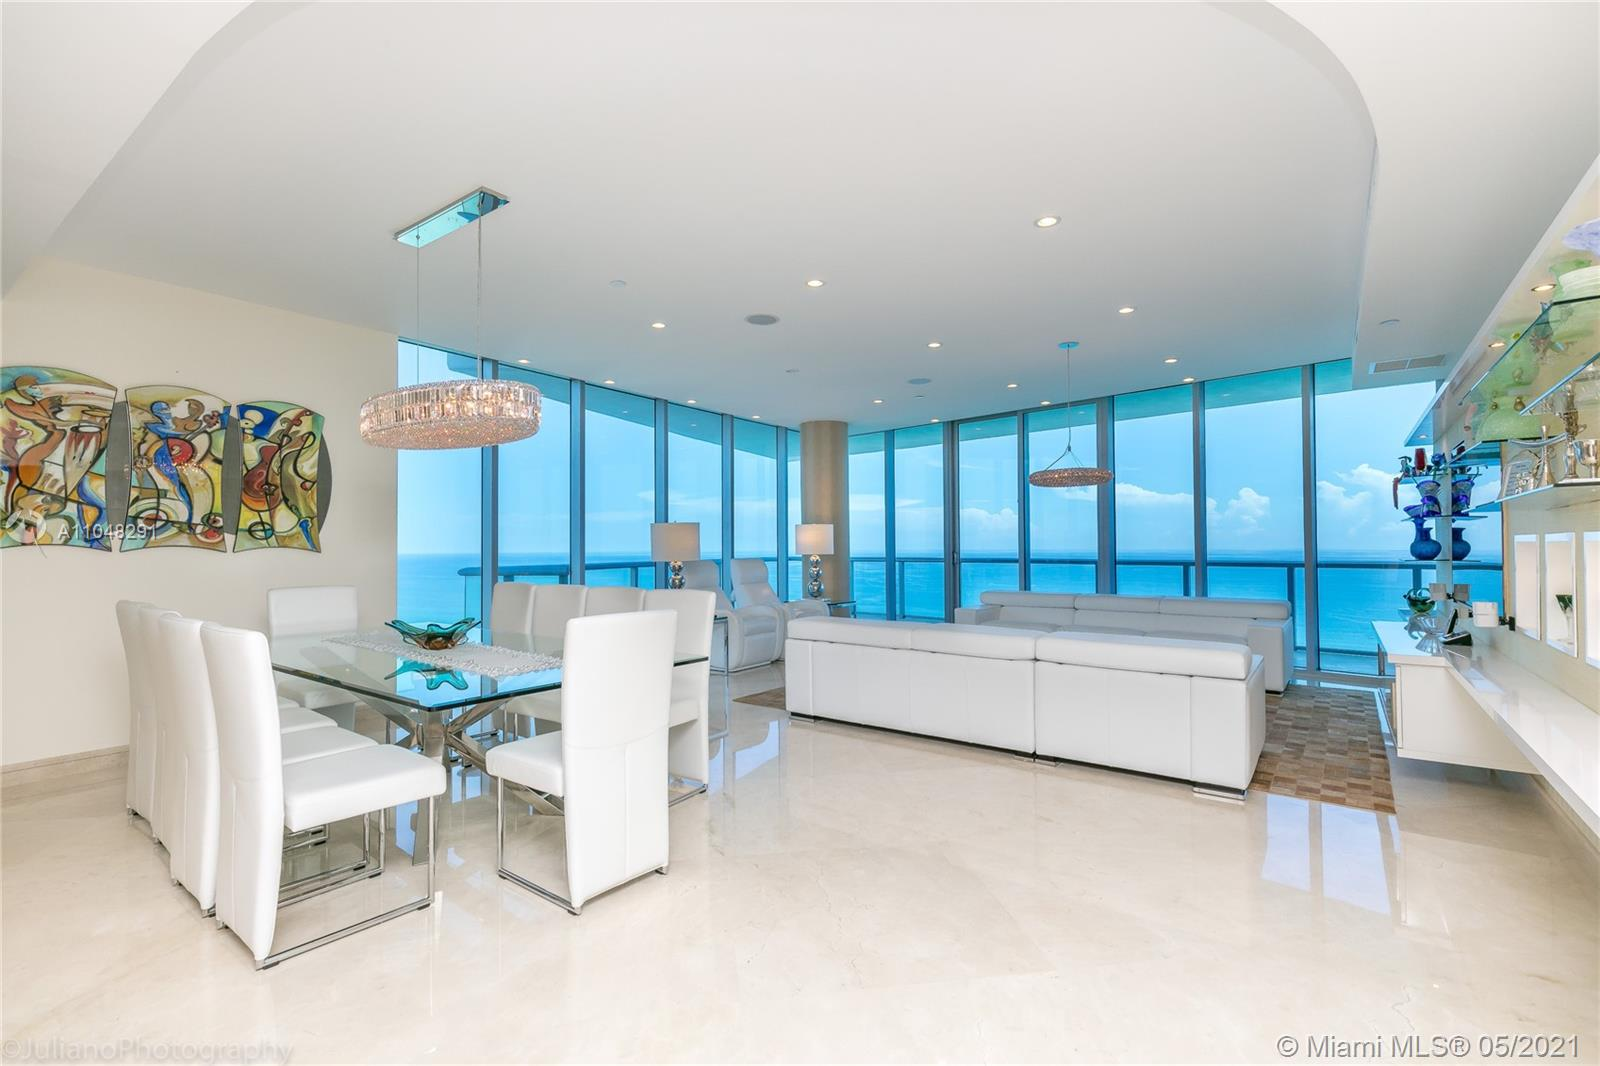 SPECTACULAR PENTHOUSE UNIT AT JADE BEACH  46 FLOOR GREAT VIEWS ,OCEAN DIRECT AND BEST SUNNY ISLES SUNSET VIEWS!!! MANSION ON THE SKY!!!PRICED FOR QUICK SALE!!! CALL L.A FOR SHOWINGS